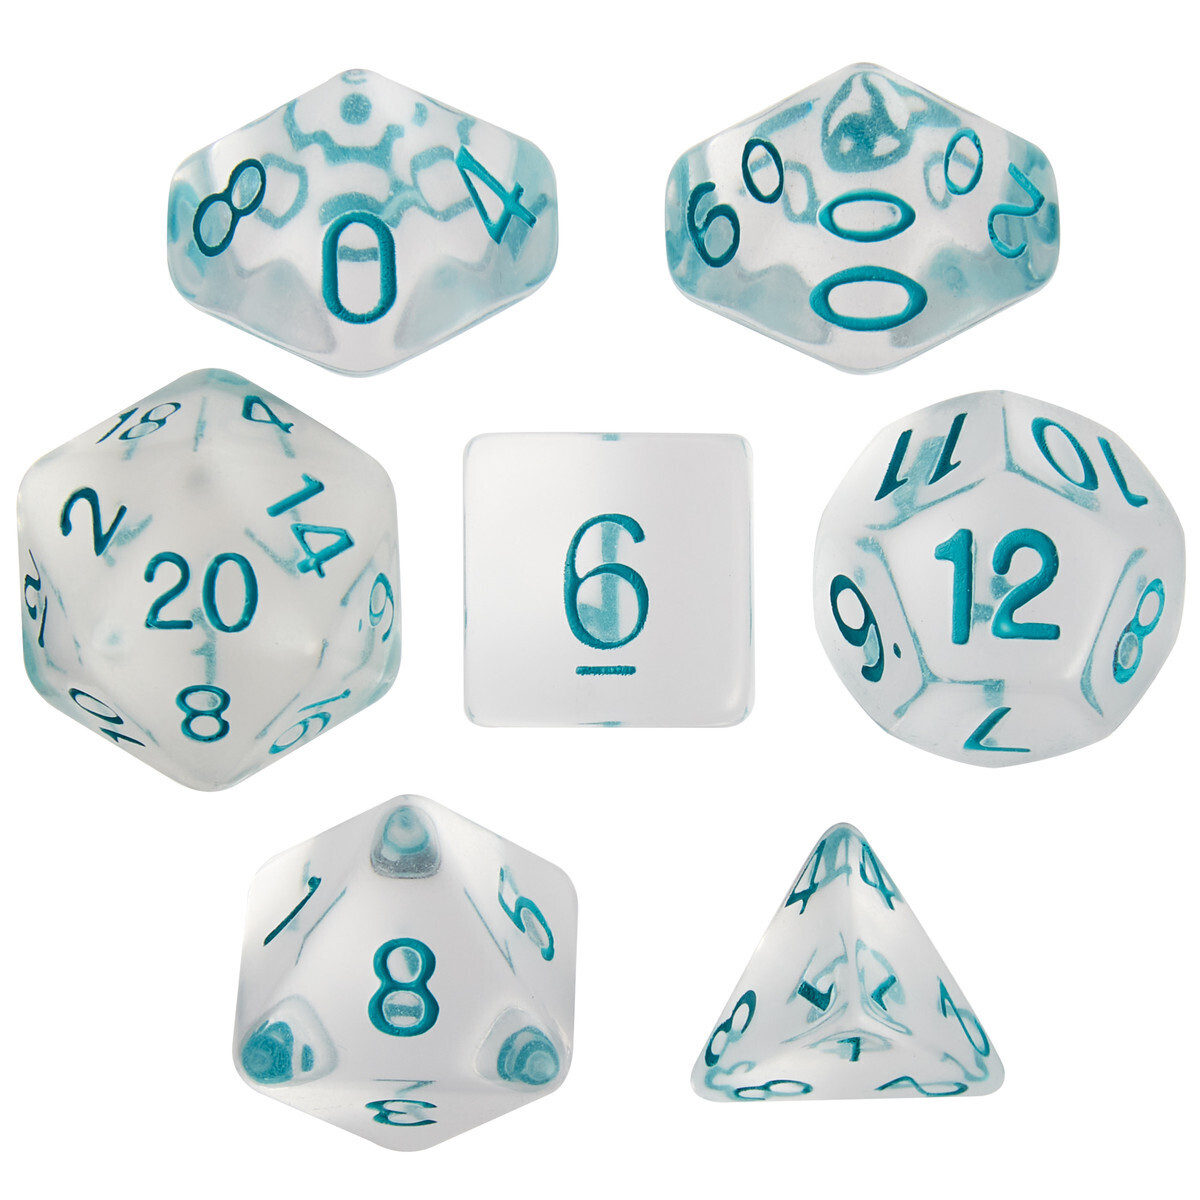 16mm 7 Die Polyhedral Set - Northwind Breeze - Clear With Blue Paint - RPG Tabletop Games Roleplay Cards CCG Board Random Roll Decision